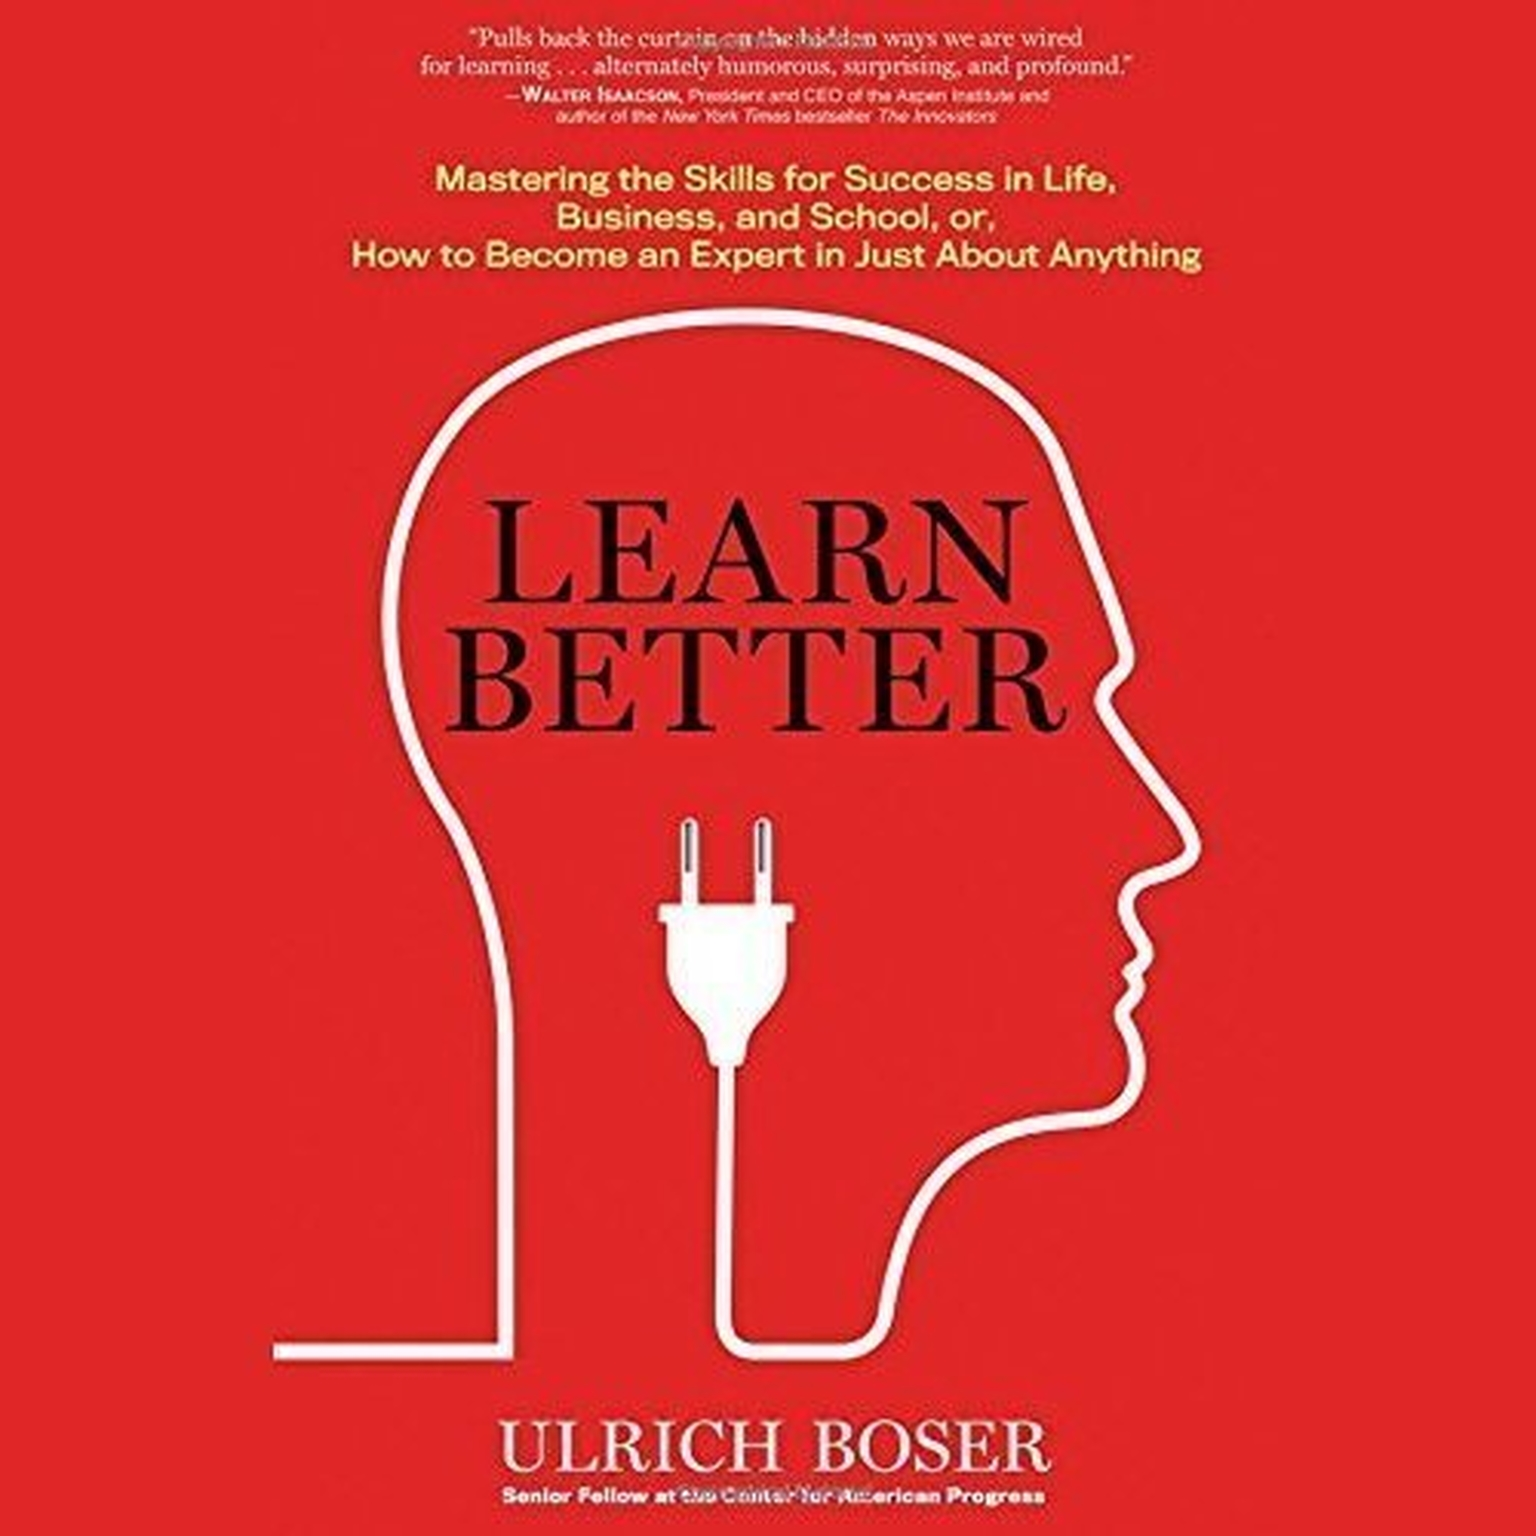 Learn Better: Mastering the Skills for Success in Life, Business, and School, or, How to Become an Expert in Just About Anything Audiobook, by Ulrich Boser